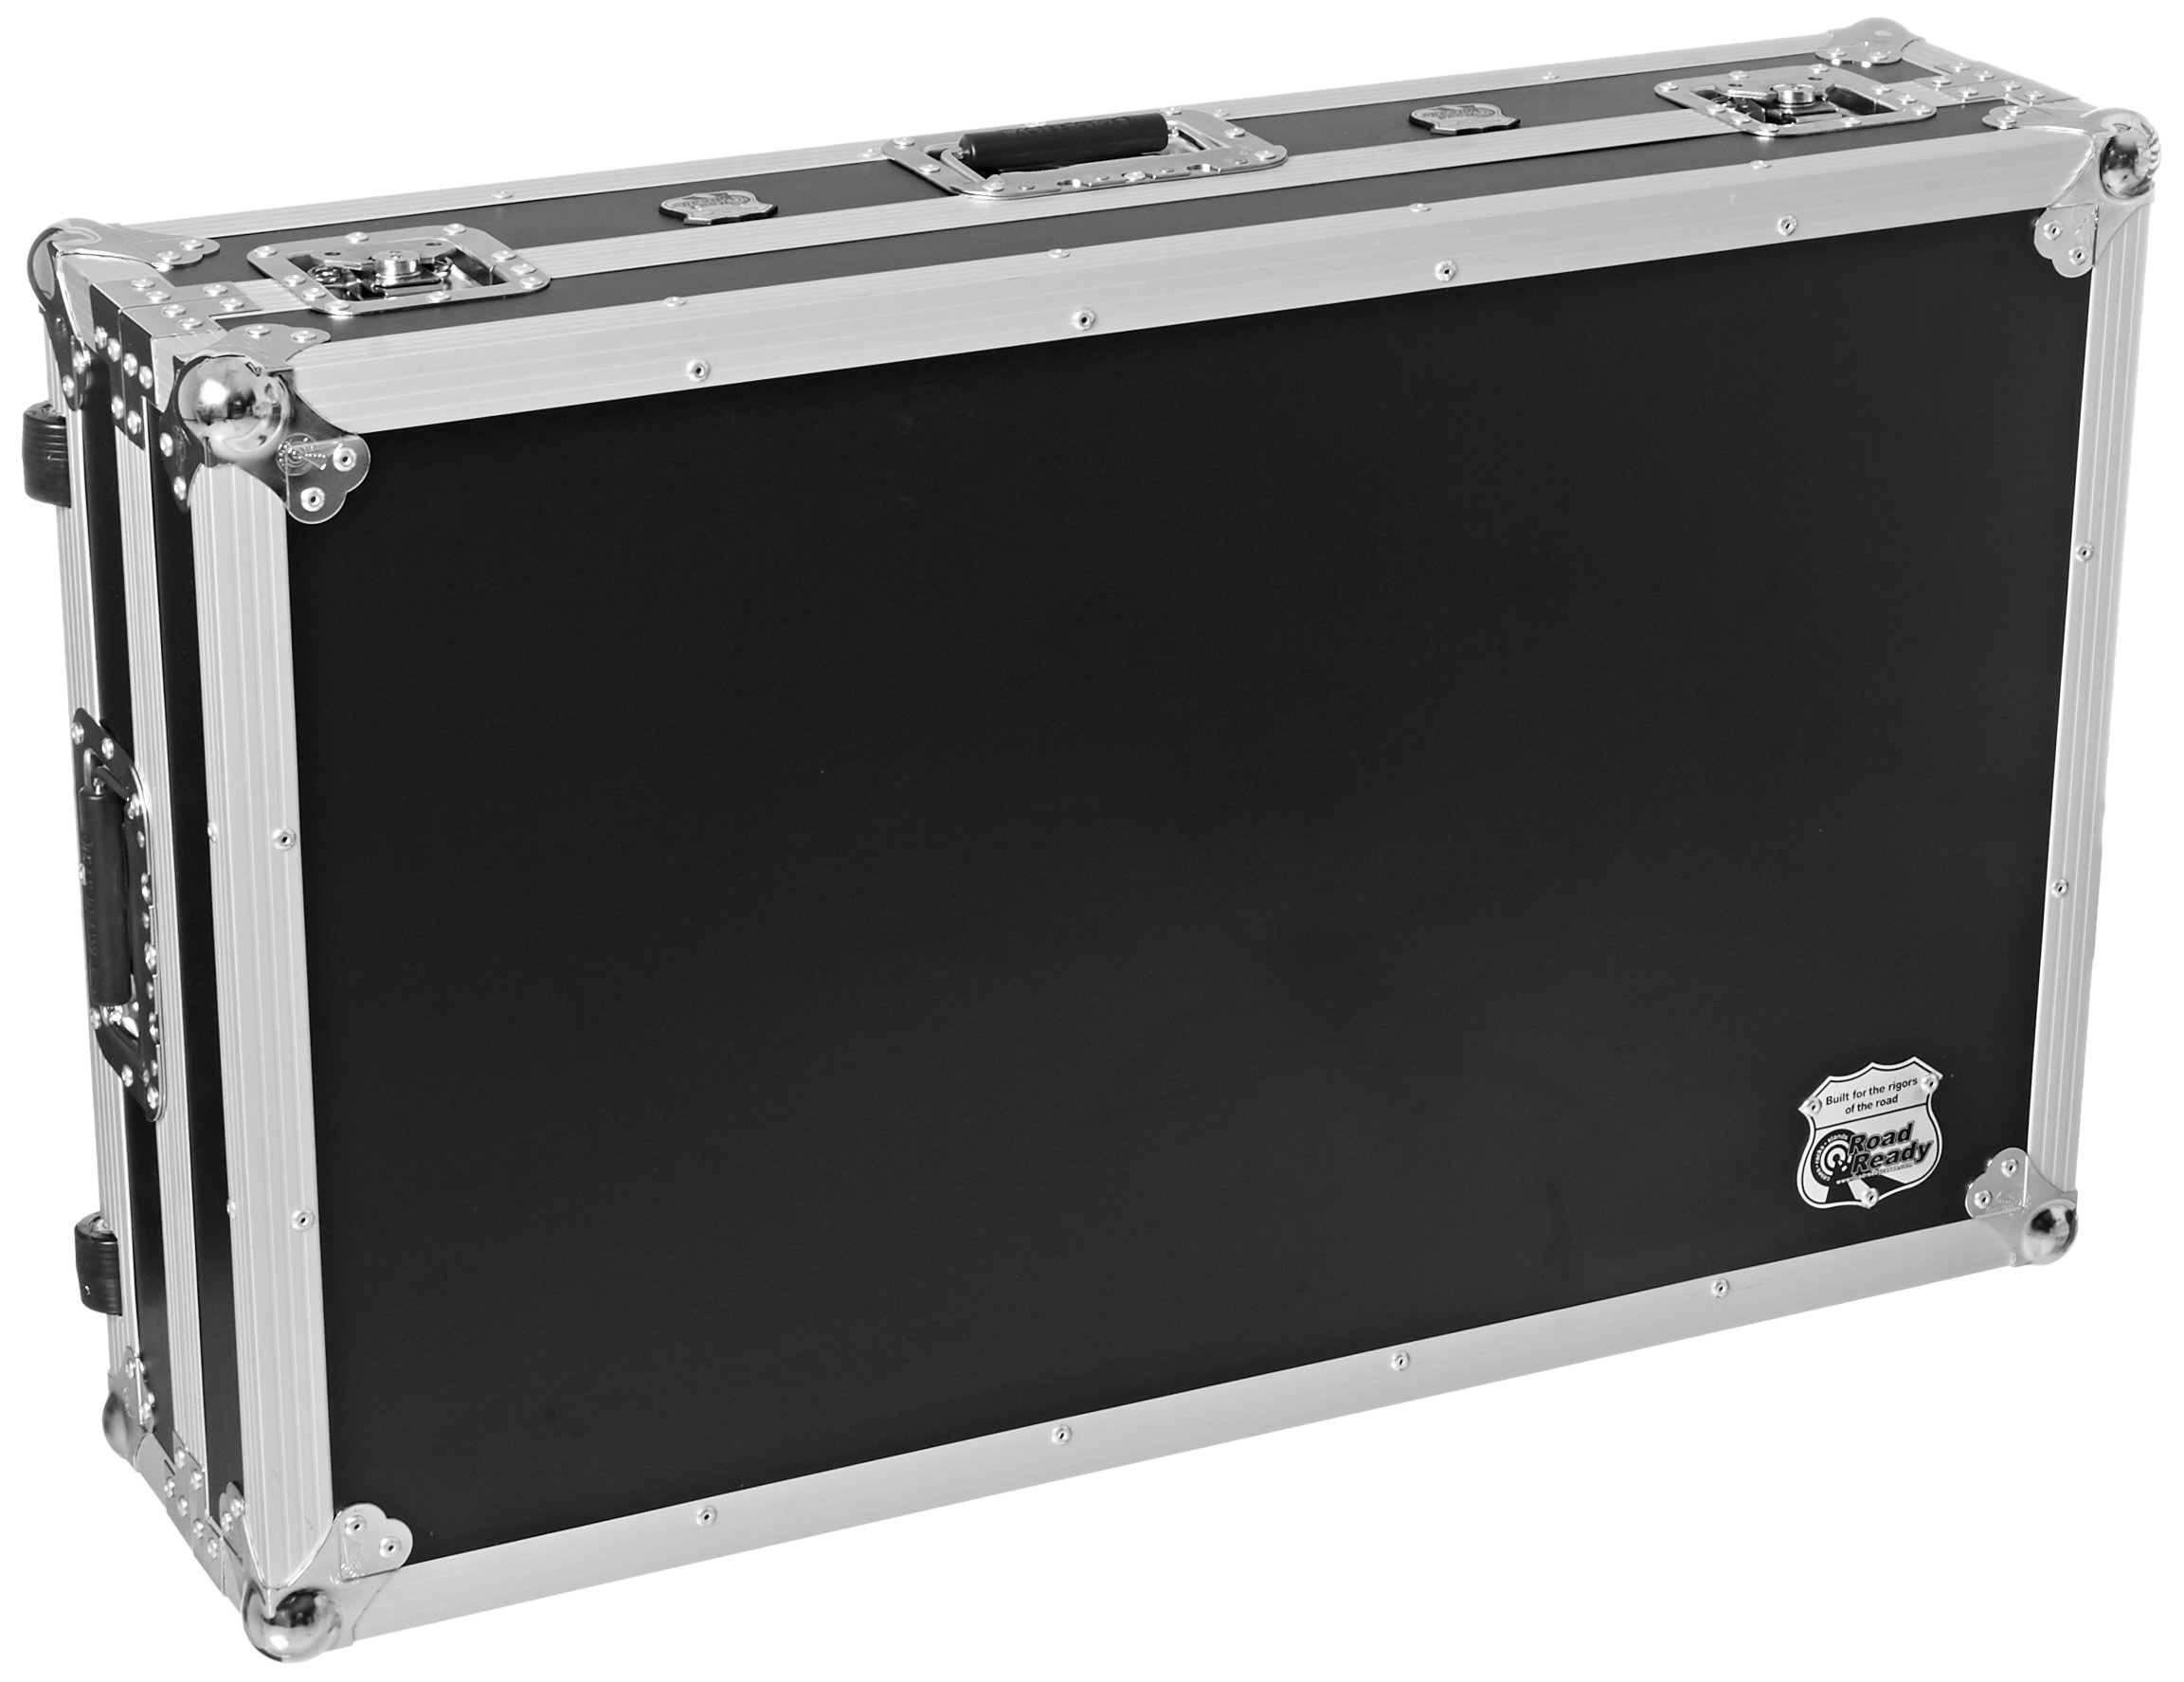 Road Ready RRDDJSZWL Case for Pioneer DDJSZ with Low Profile Wheels and Laptop Tray